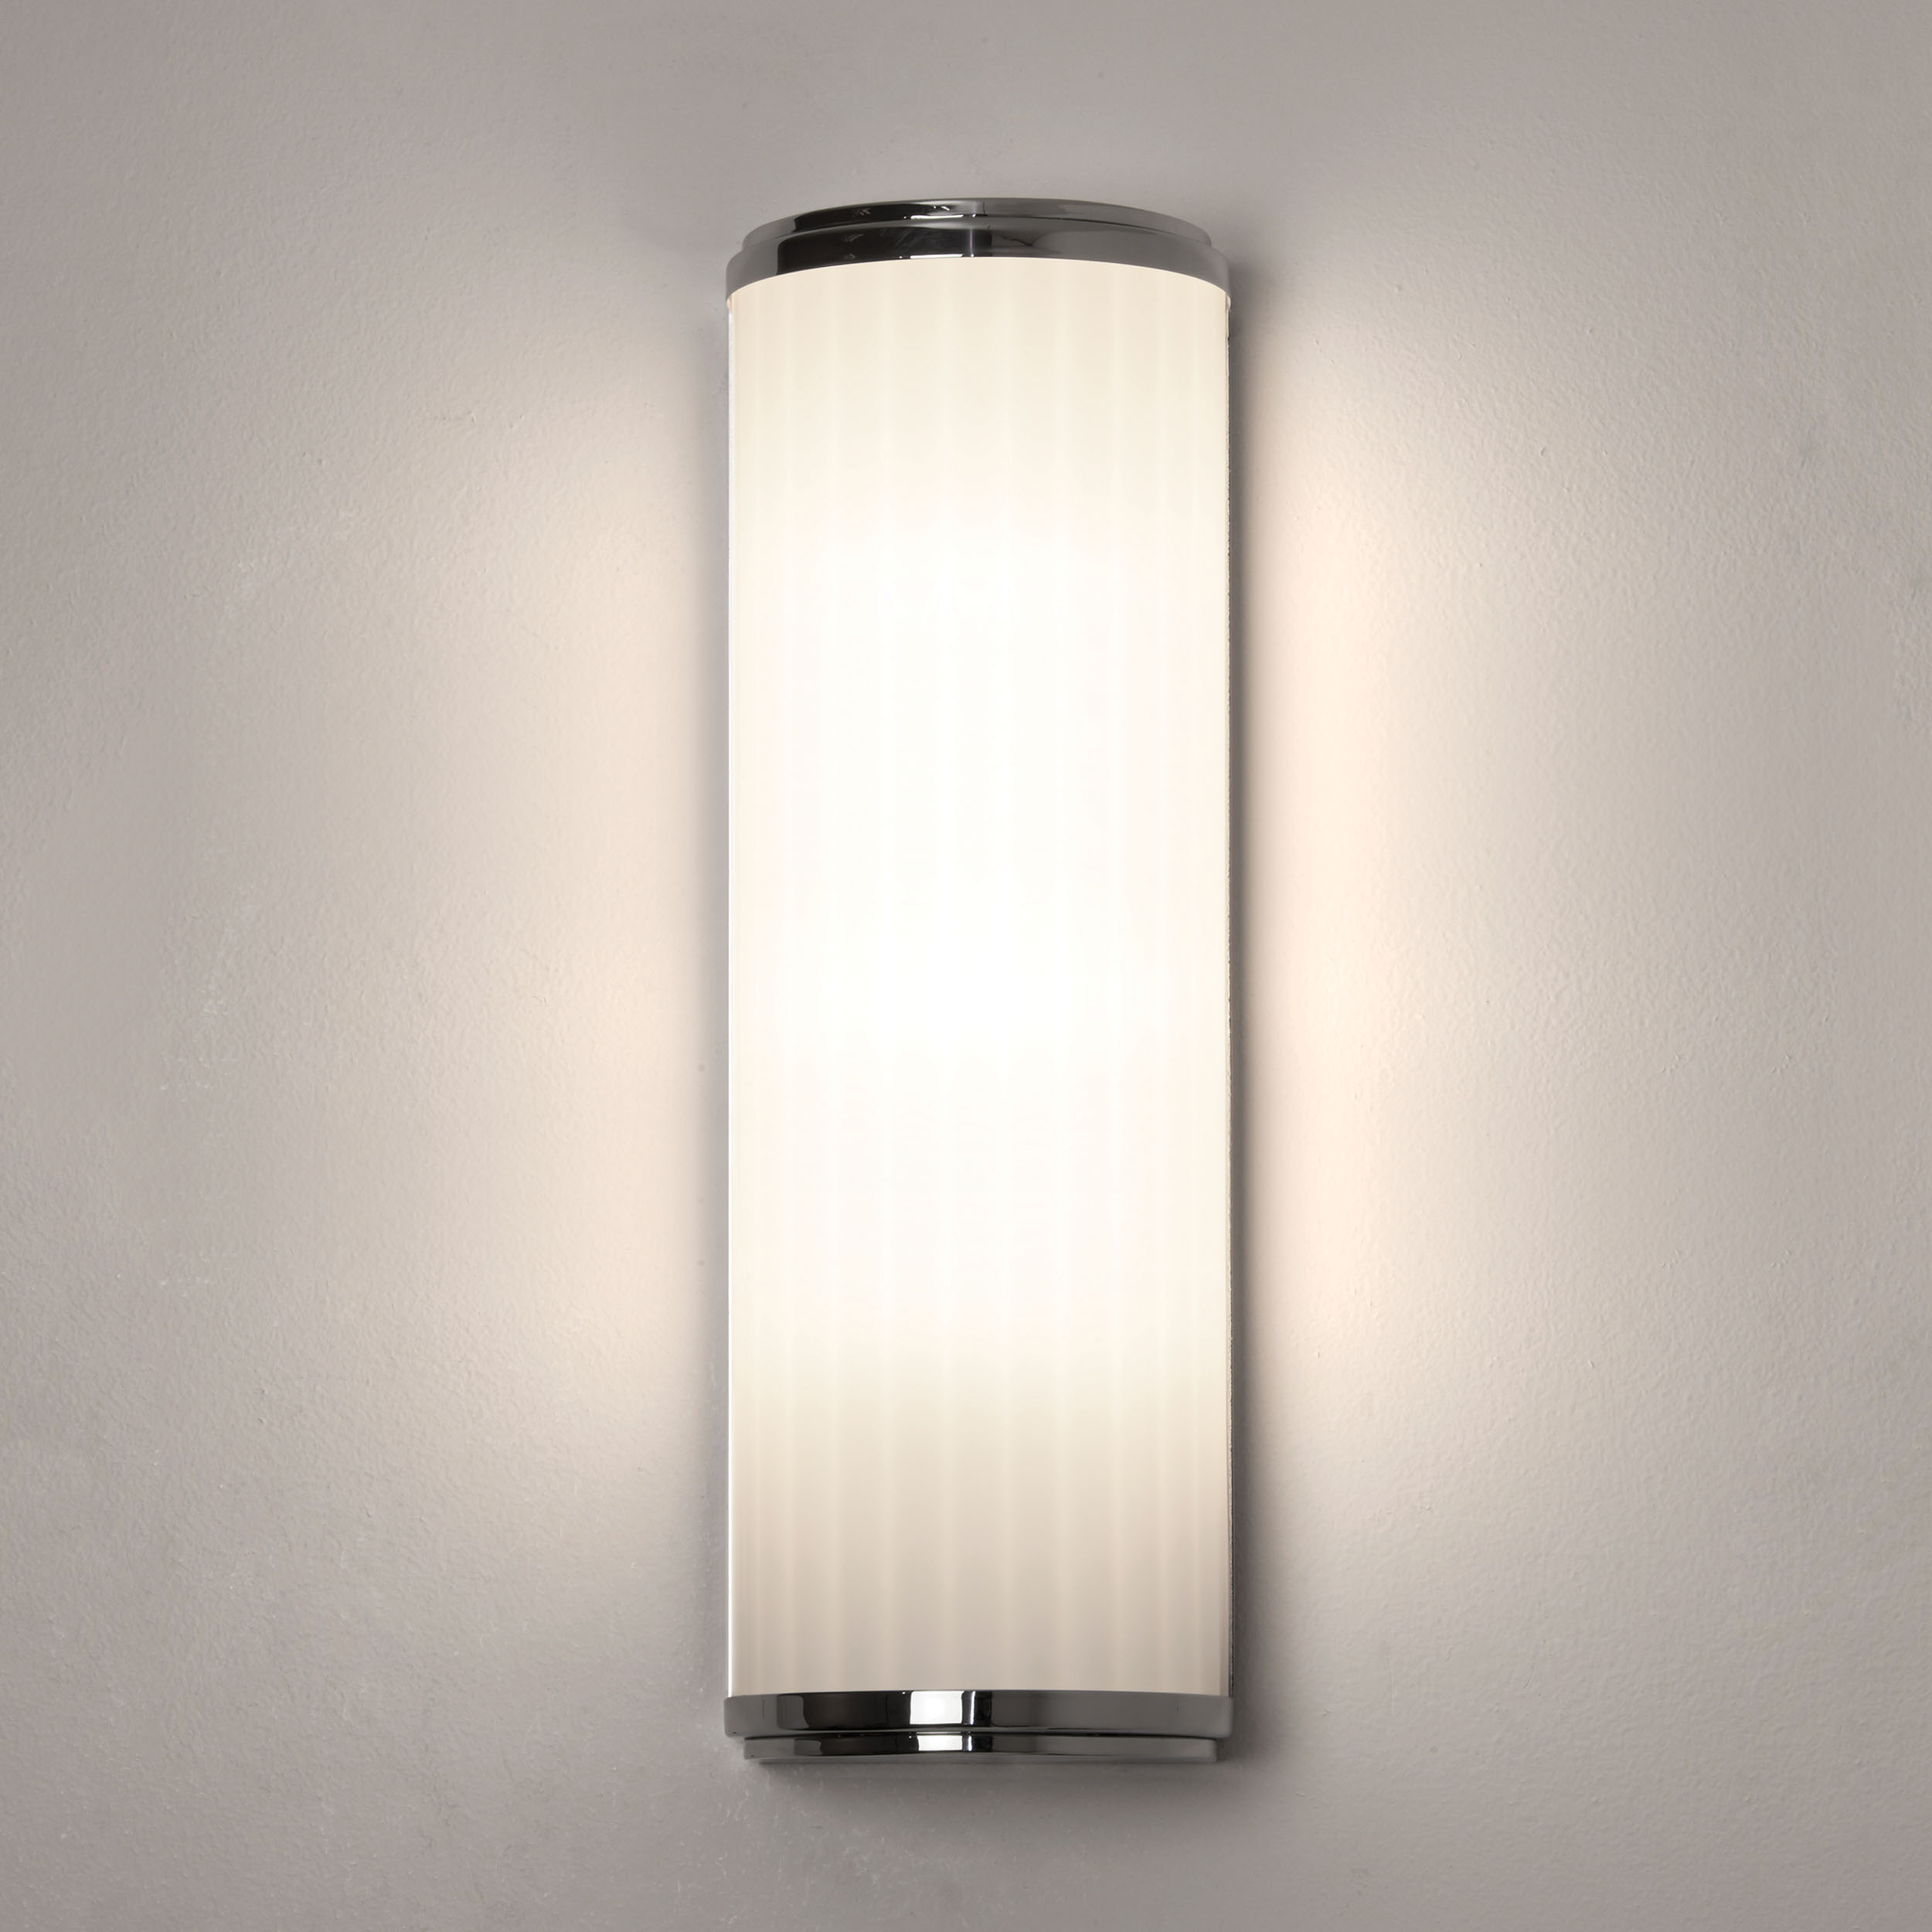 ASTRO MONZA 400 6.4W LED IP44 bathroom wall mirror light polished chrome glass